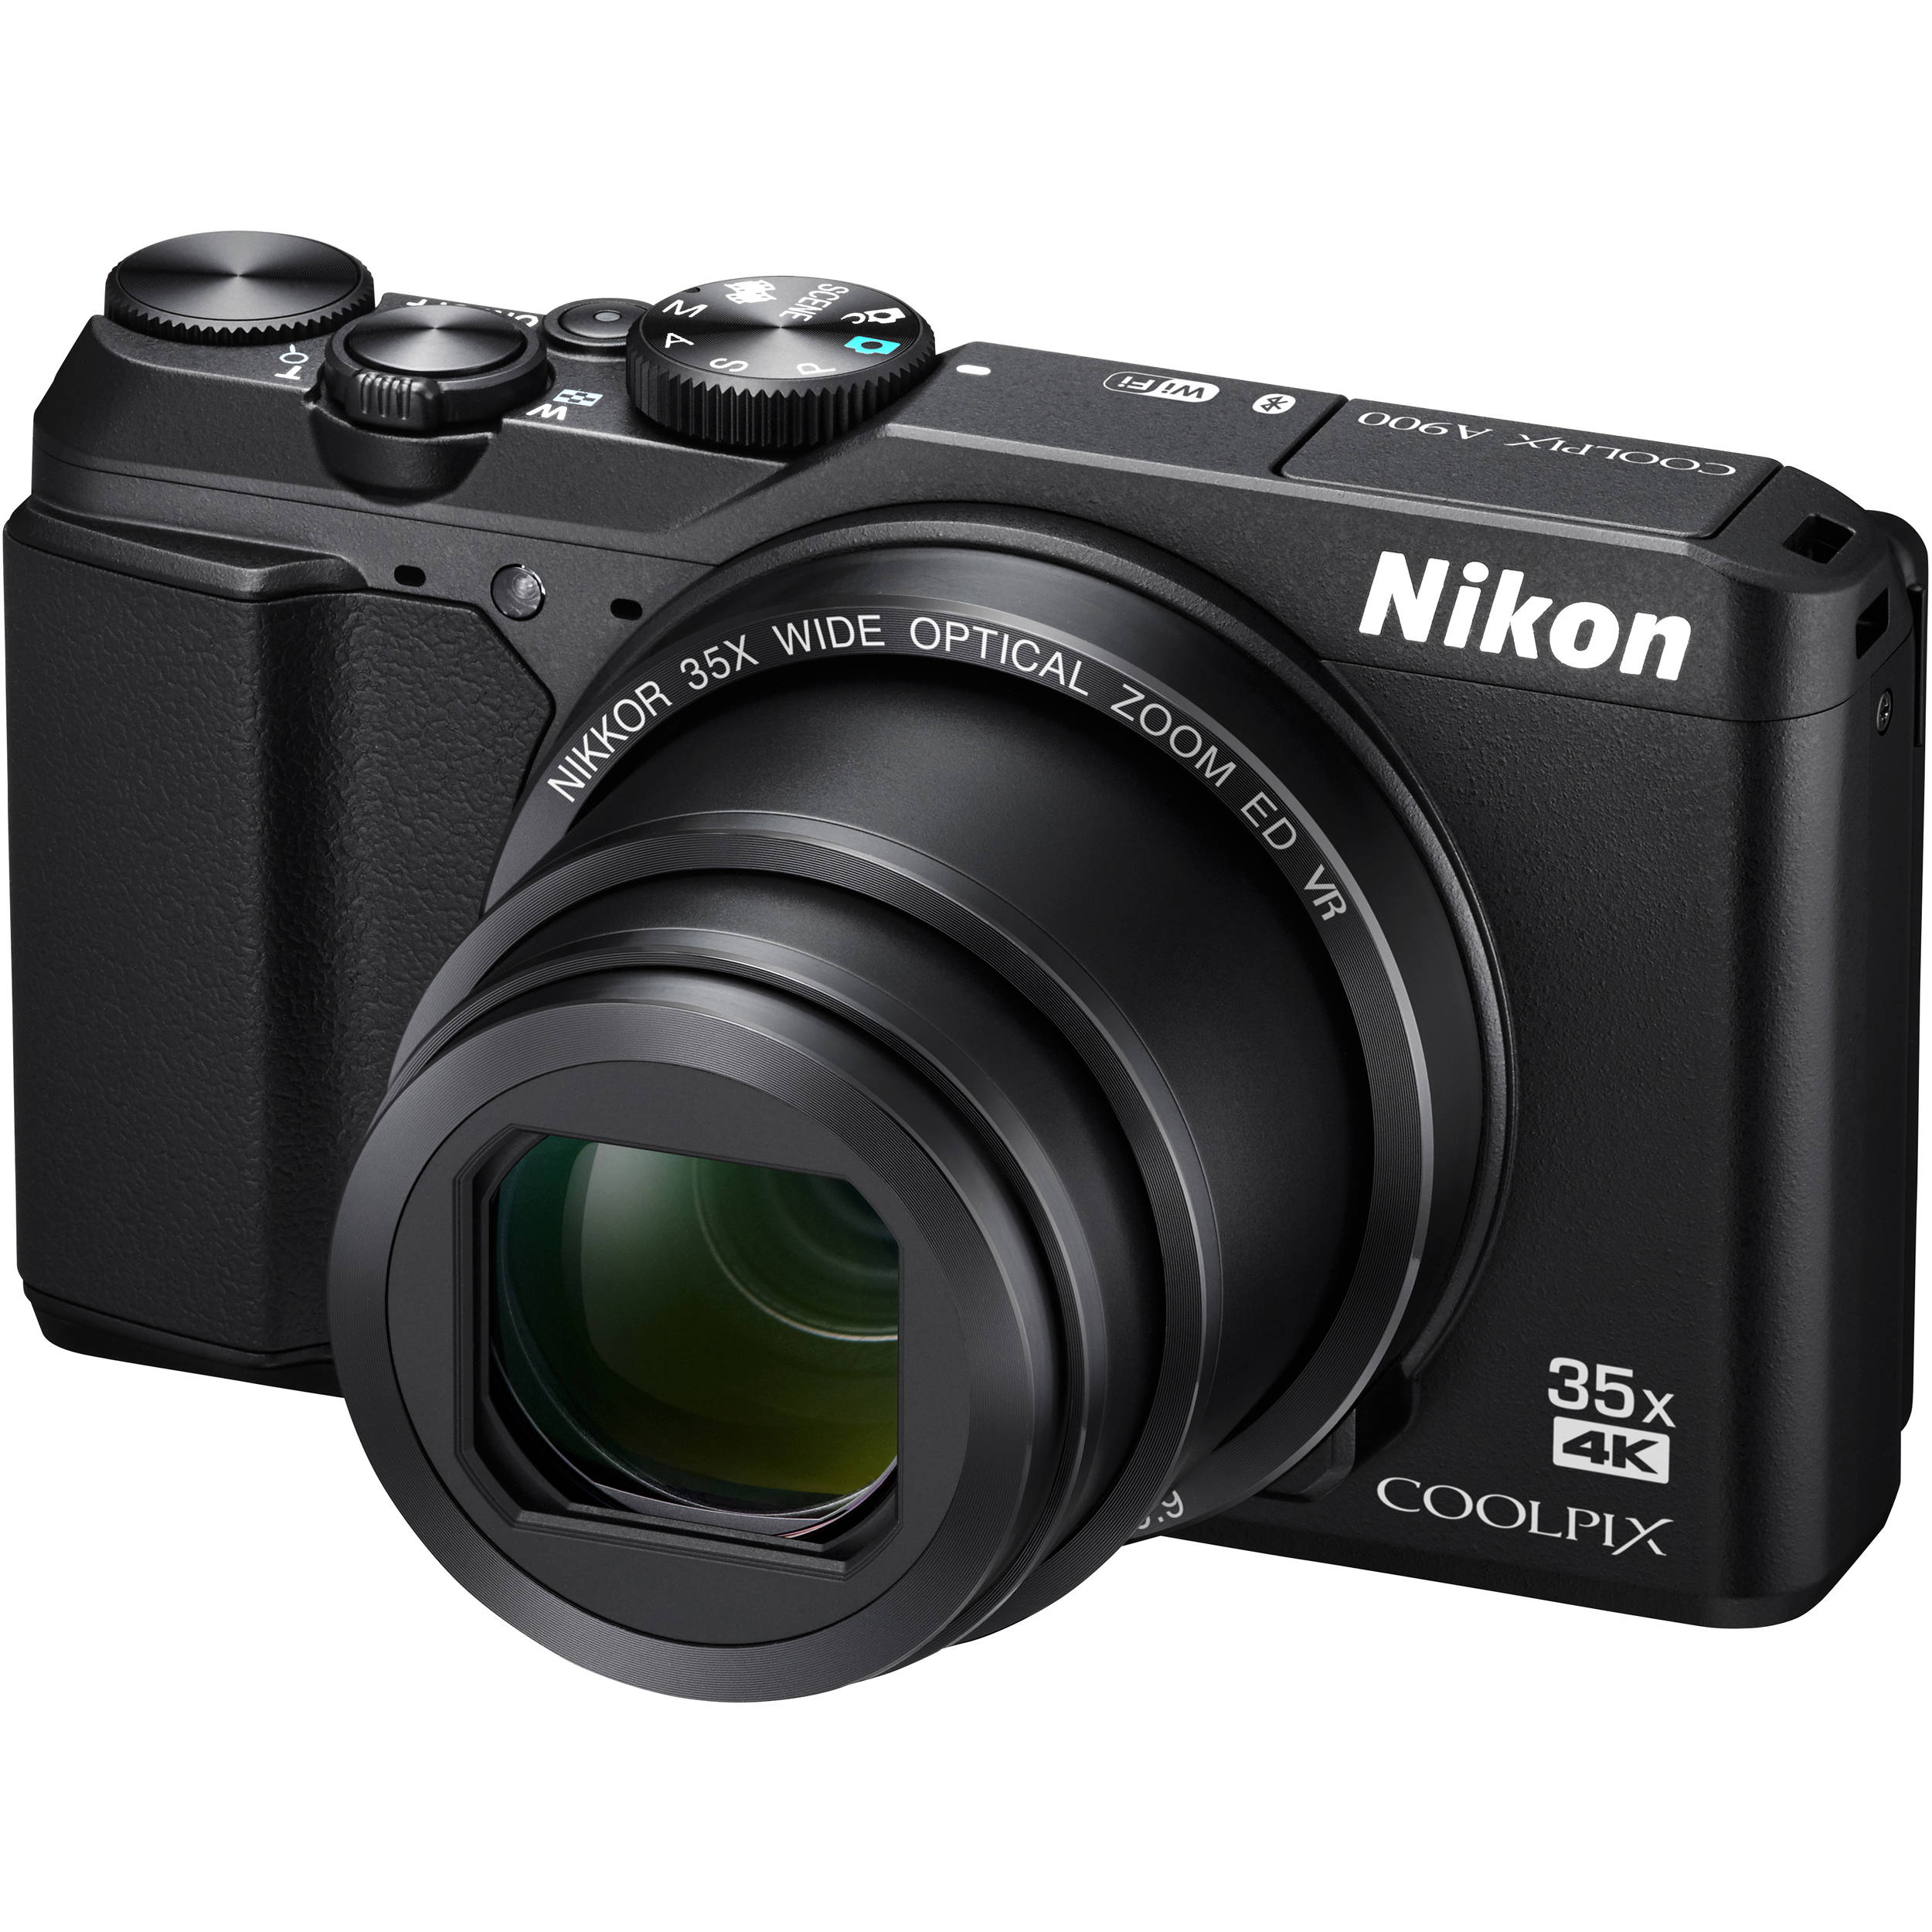 Nikon COOLPIX A900 Digital Camera (Black) 26501 B&H Photo Video